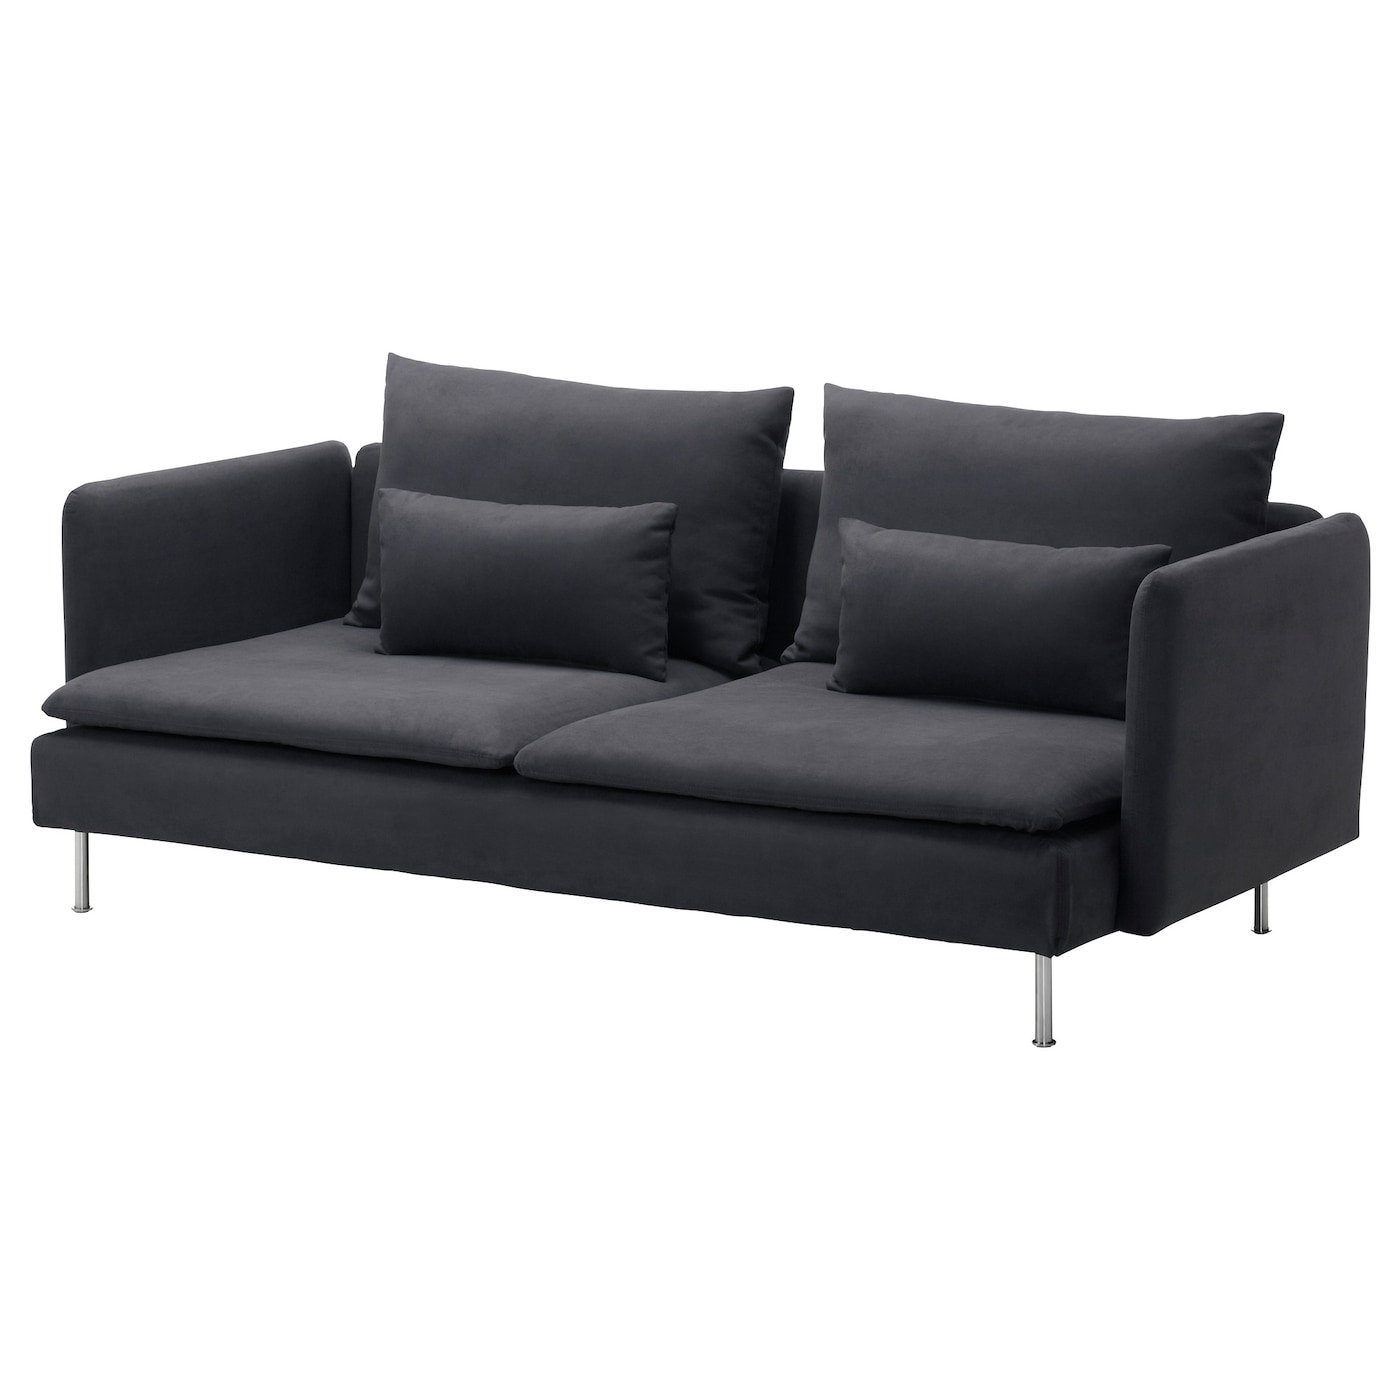 S derhamn three seat sofa samsta dark grey ikea for Canape ikea cuir